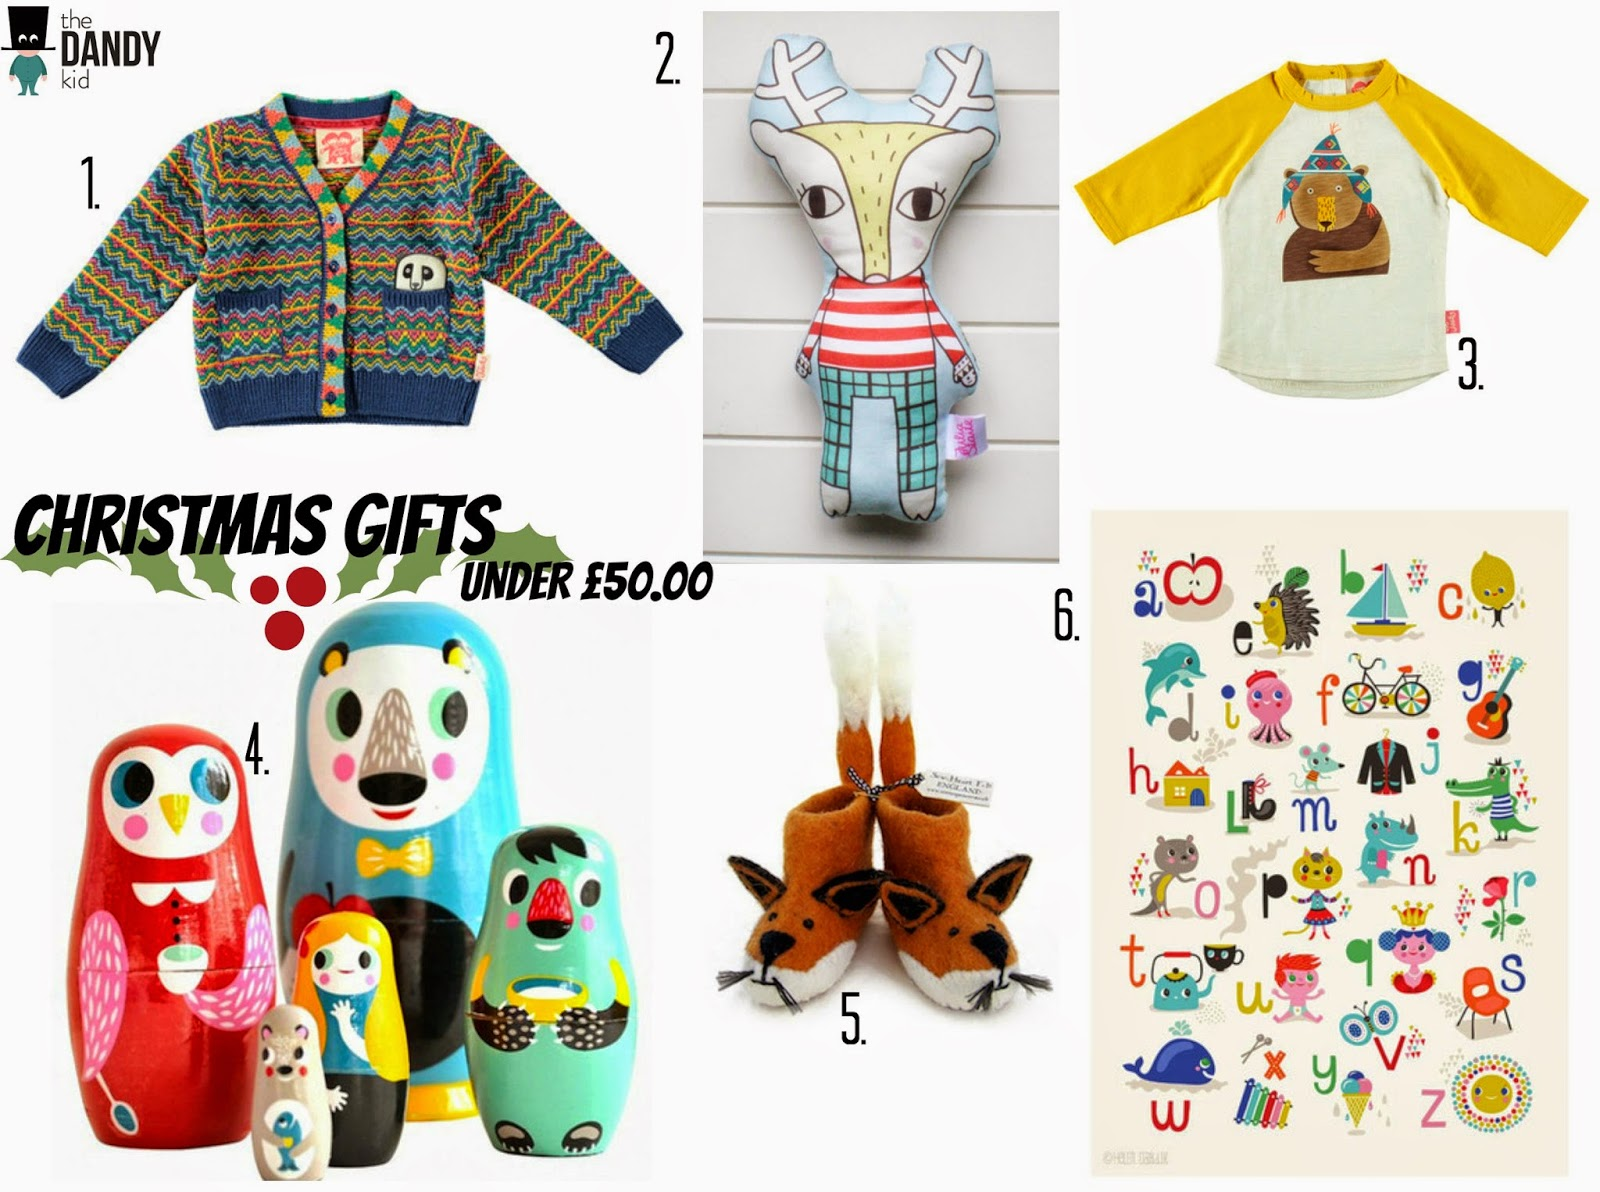 c0fd9fac9 Christmas Gift List and Amazing GIVEAWAY with The Dandy Kid | Little ...